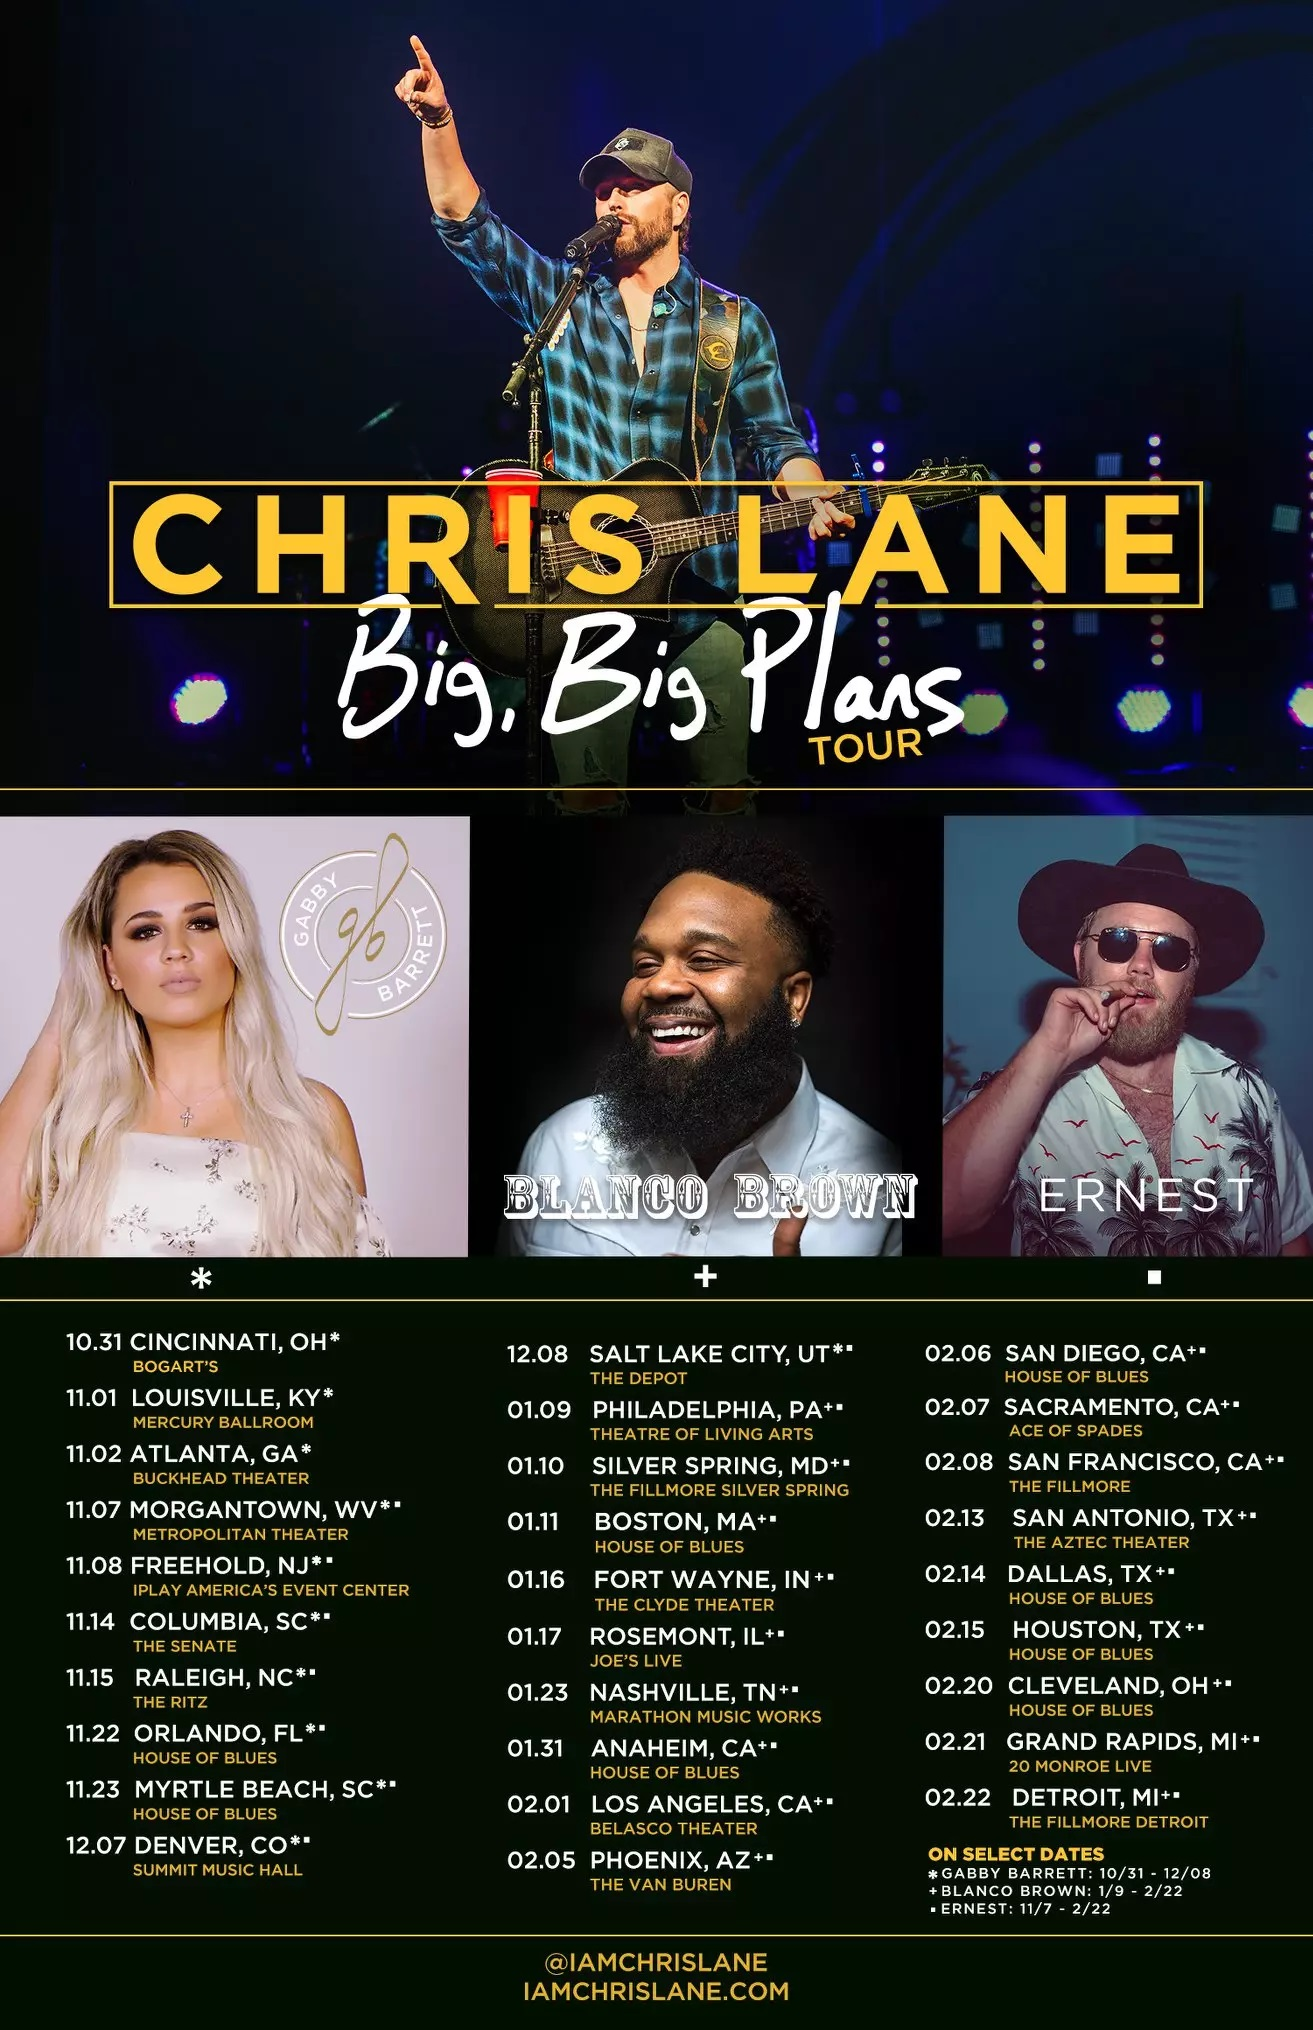 CHRIS LANE'S BIG, BIG PLANS TOUR WITH GABBY BARRETT, BLANCO BROWN, AND ERNEST IN FALL/WINTER 2019-2020